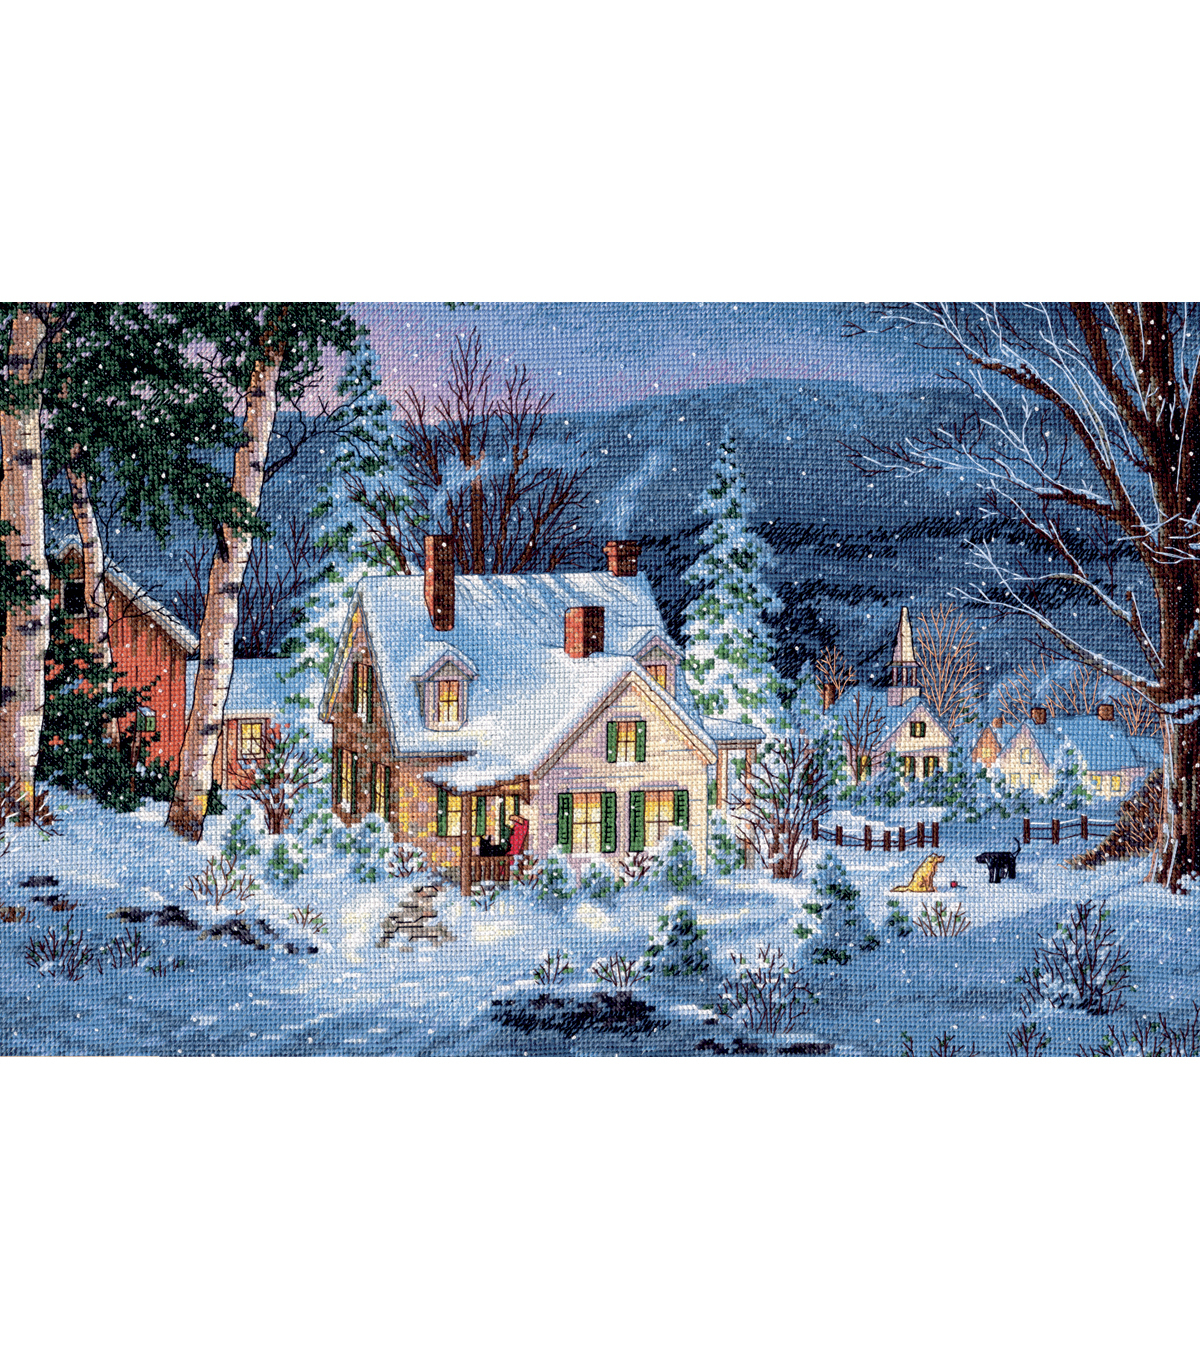 Gold Collection Winter\u0027s Hush Counted Cross Stitch Kit-20\u0022X14\u0022 16 Count